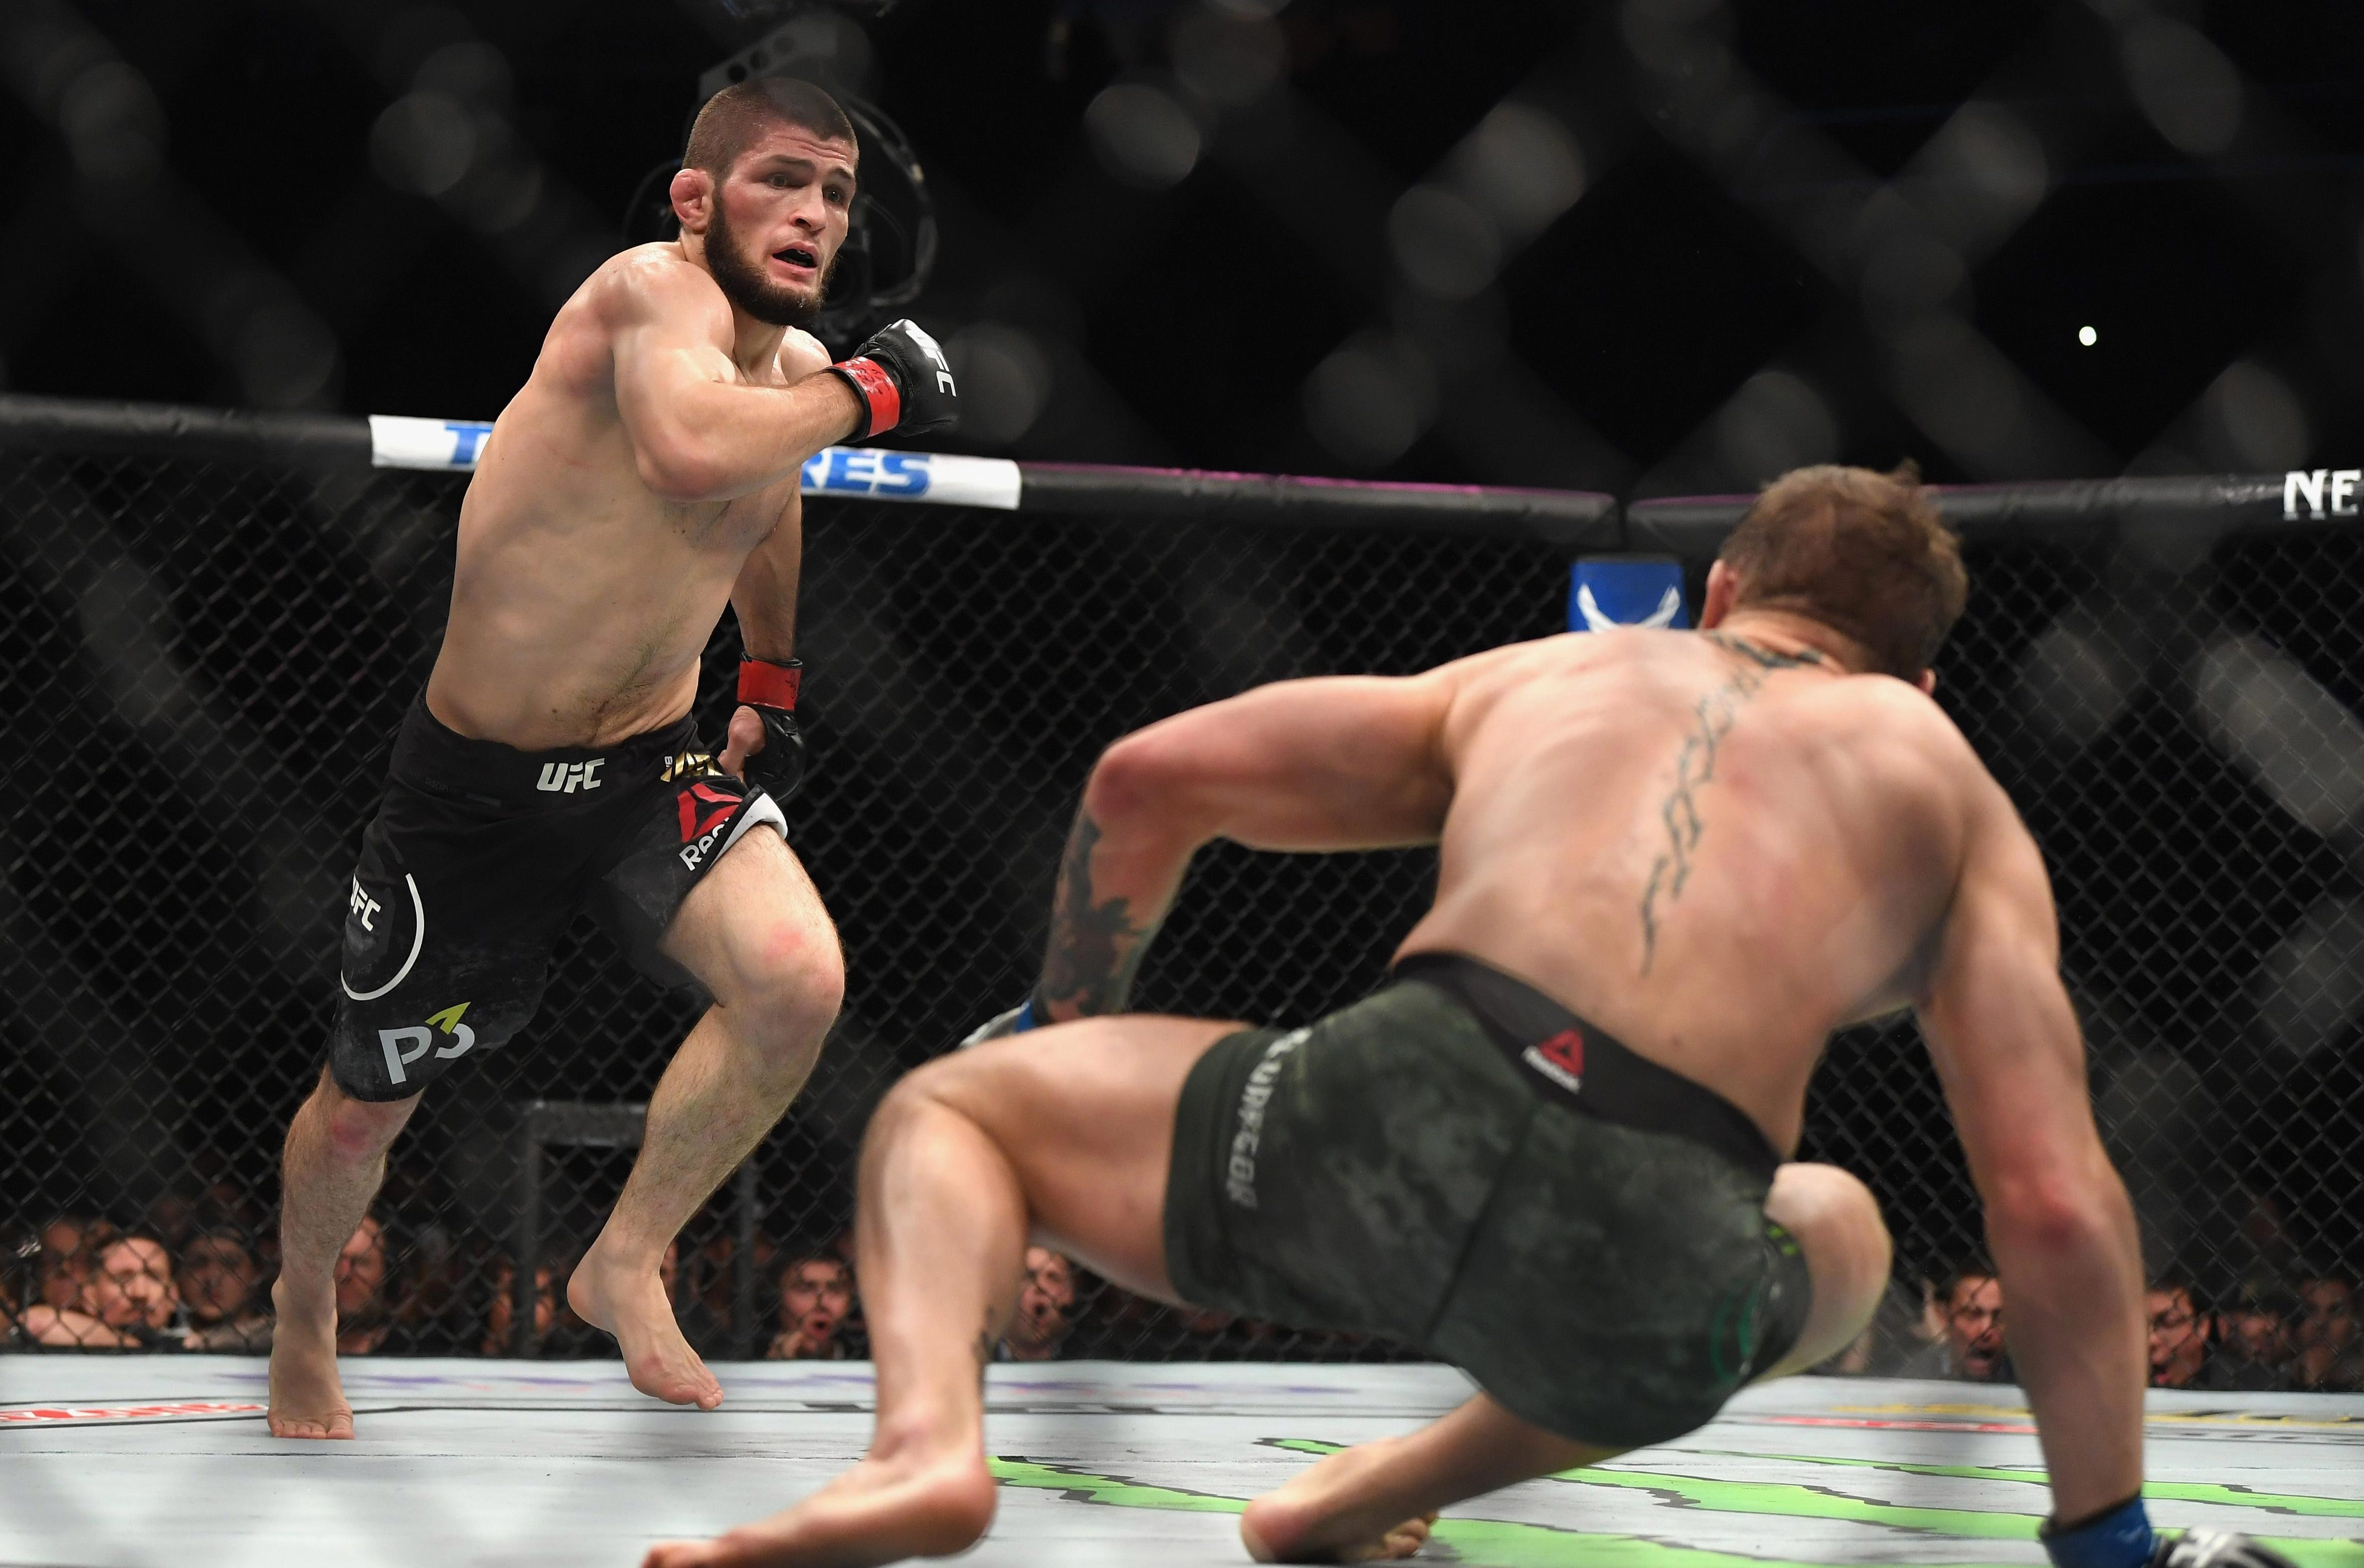 Nurmagomedov dropped McGregor with a strong right hand in the second round